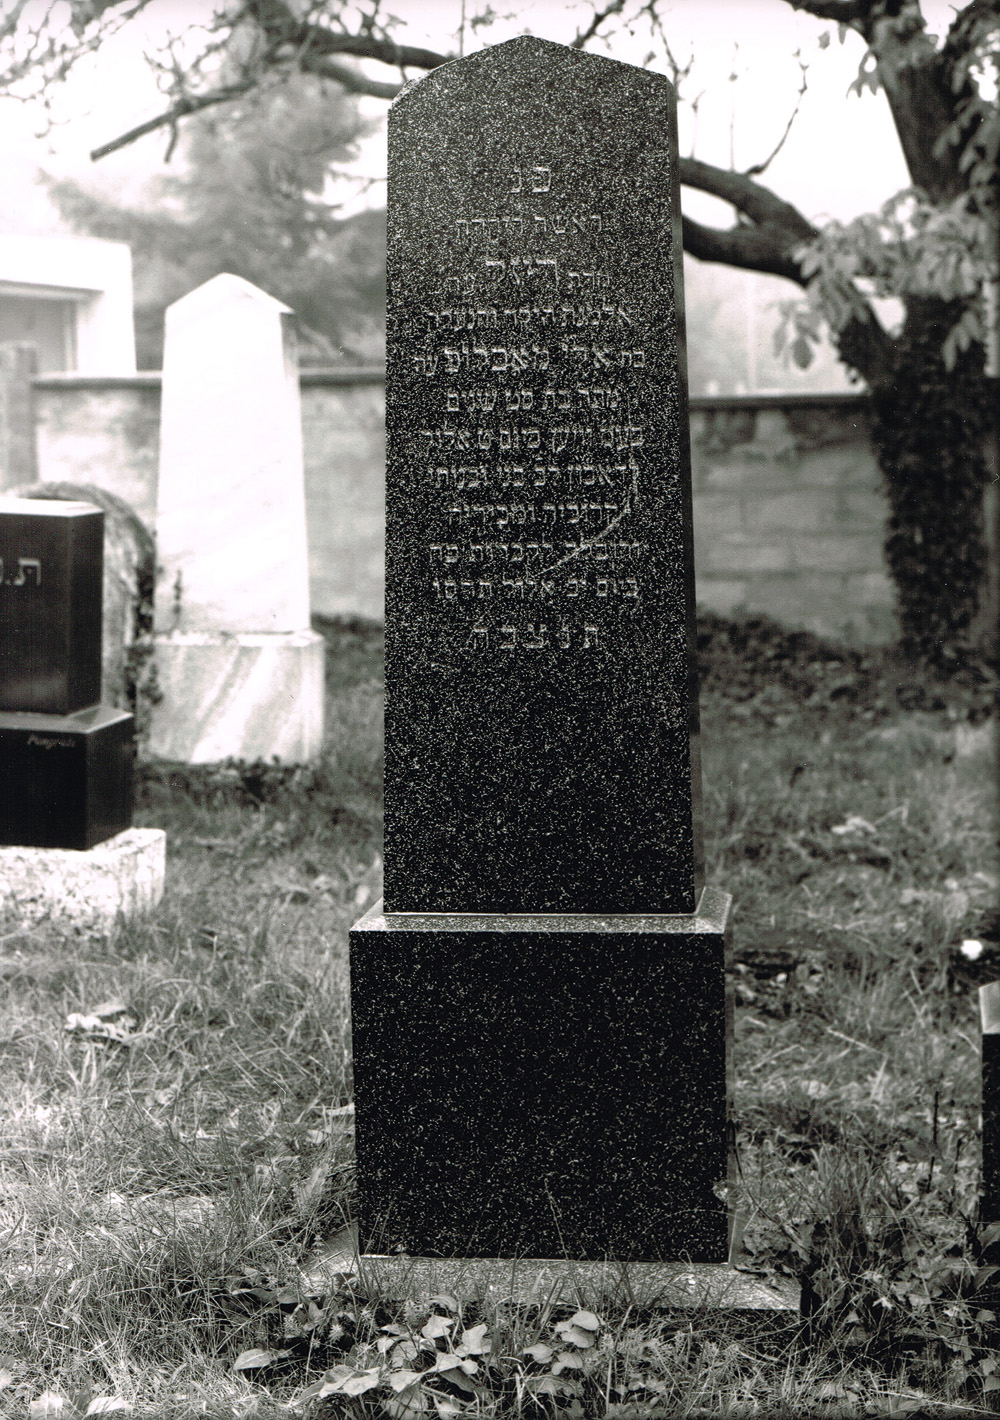 Grabstein Machlup Theresia – 30. August 1906, Foto 1993